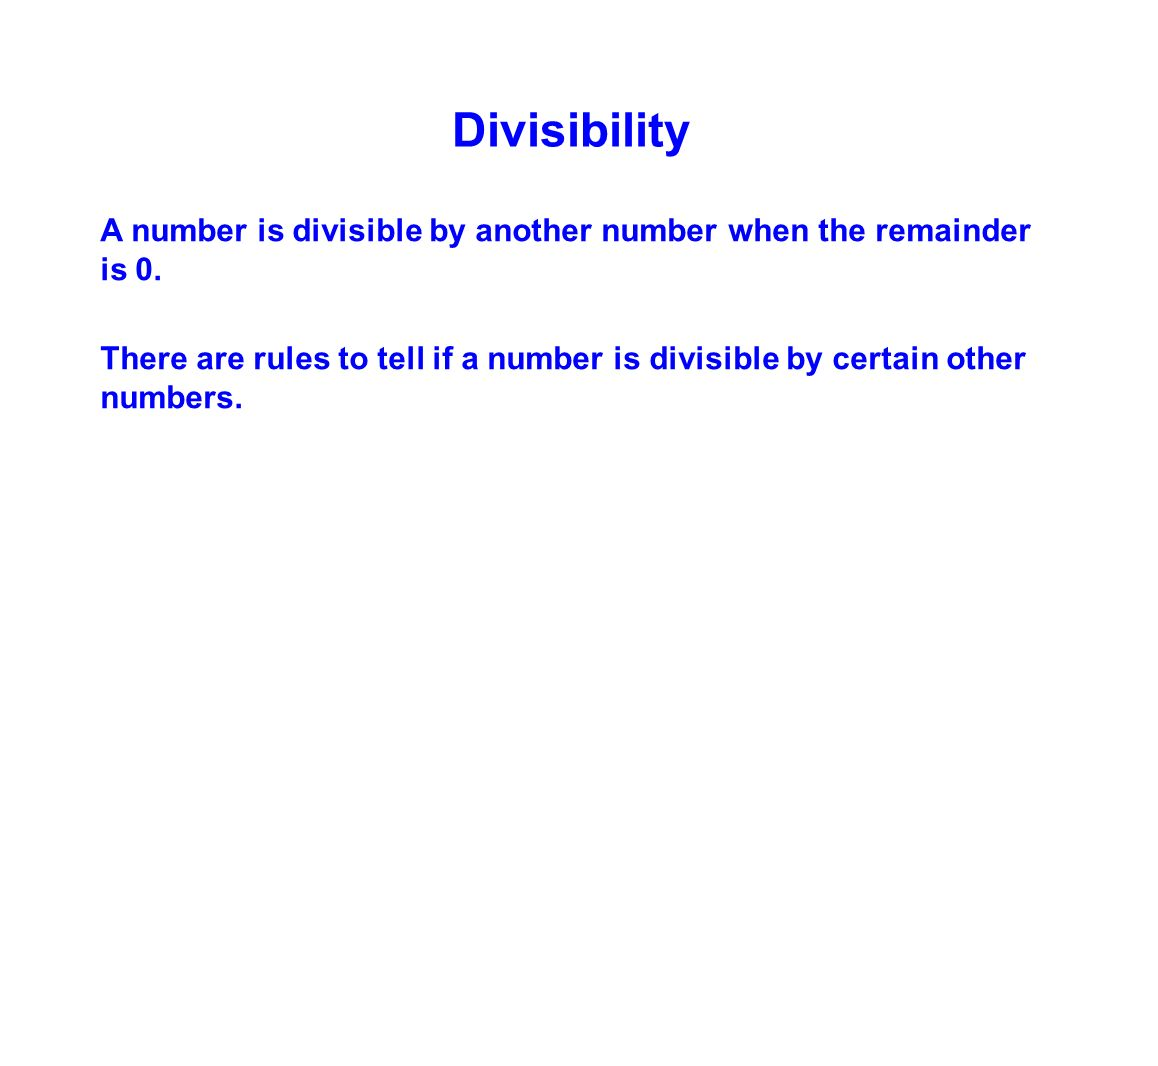 worksheet 5th Grade Division 5th grade division mrs berish ppt video online download 6 divisibility